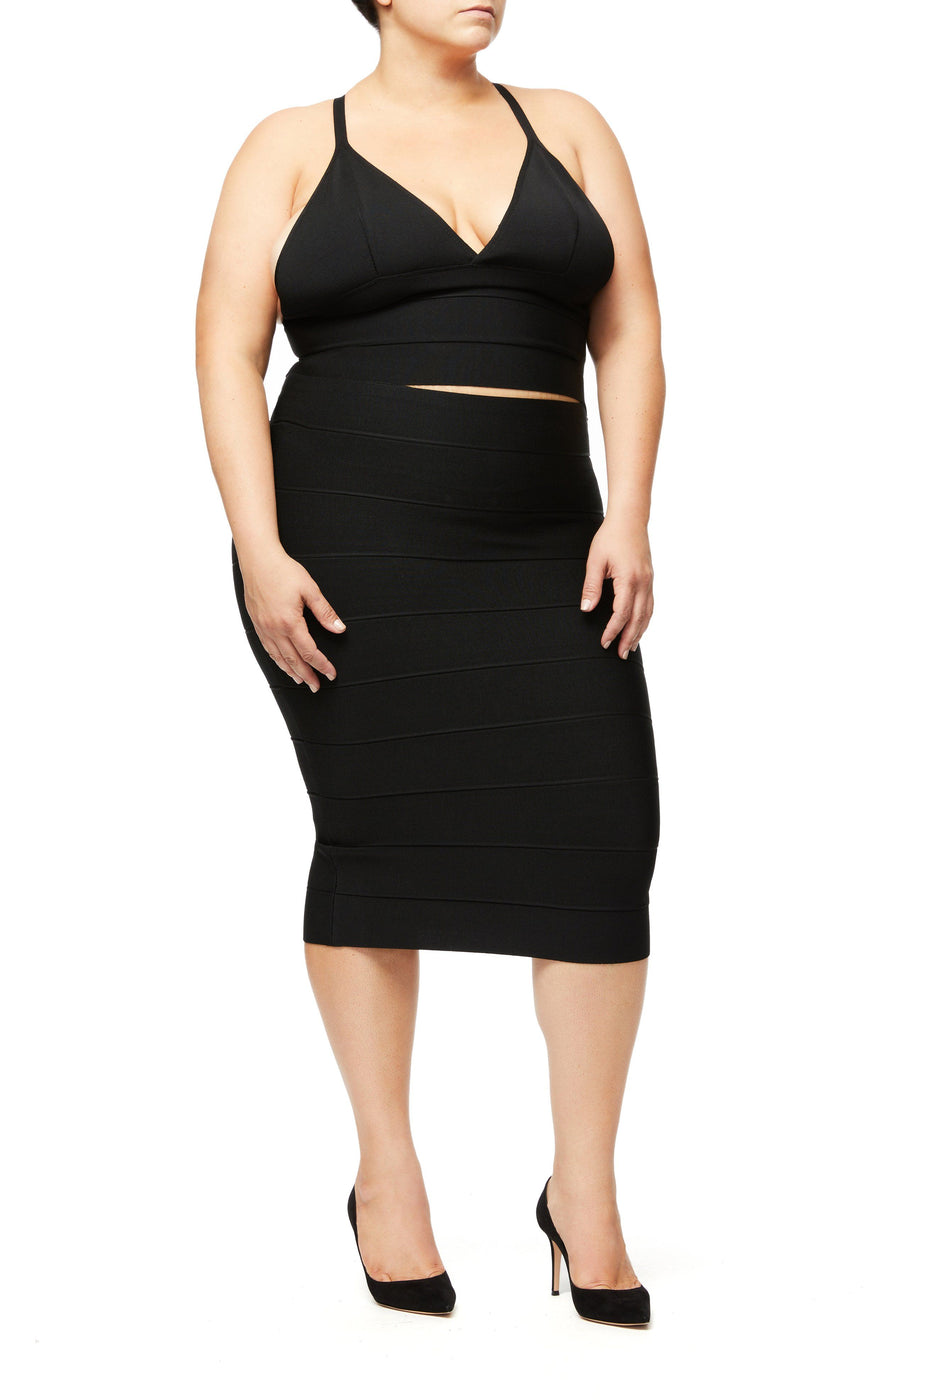 THE EXPRESS YOURSELF BANDAGE SKIRT | BLACK001